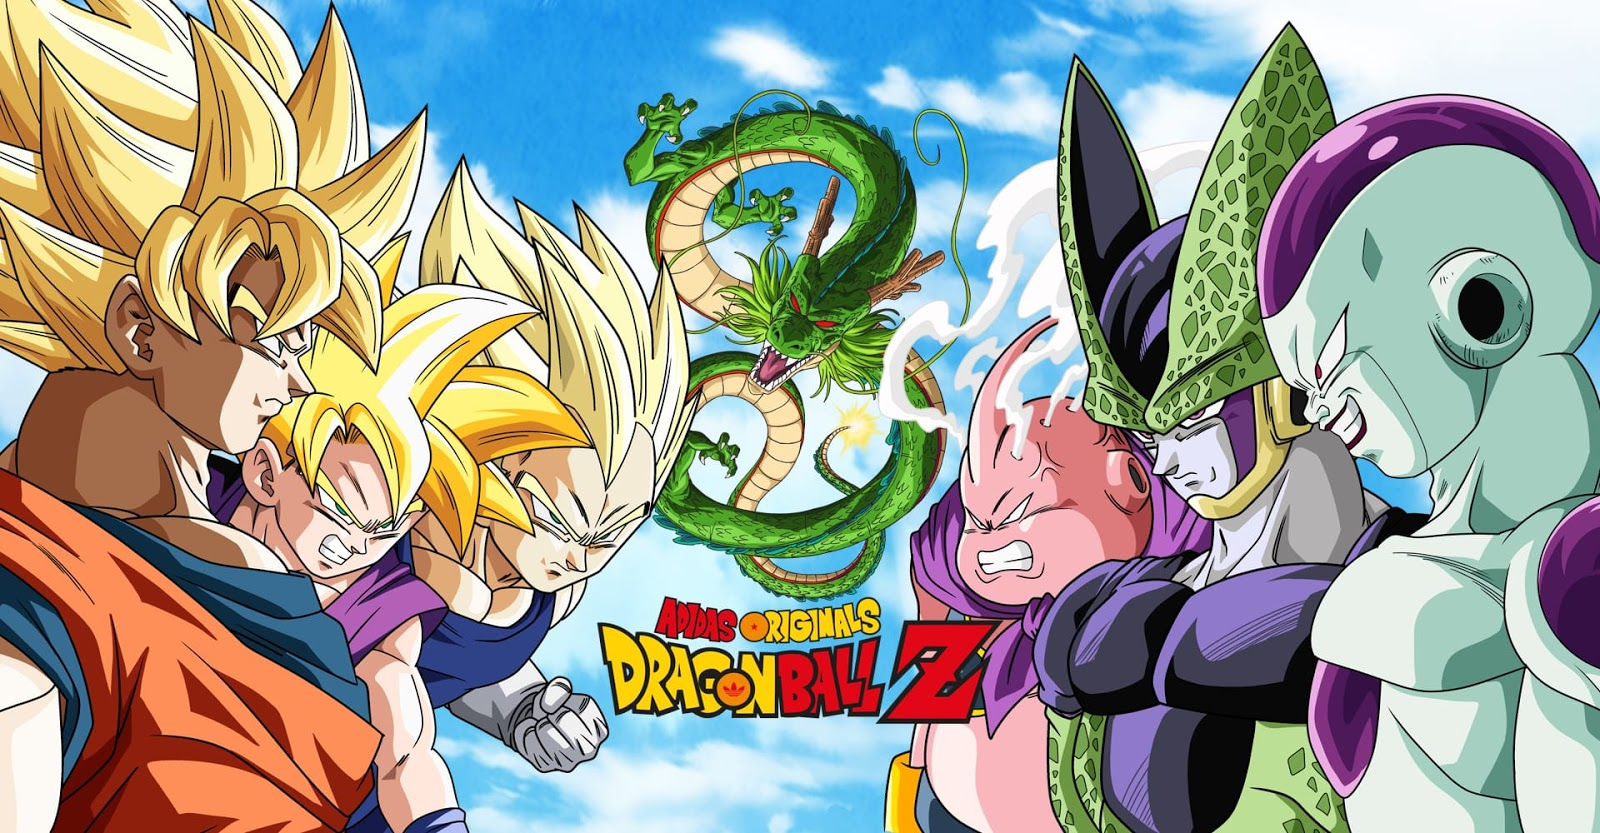 dragon ball z episode 1 download free